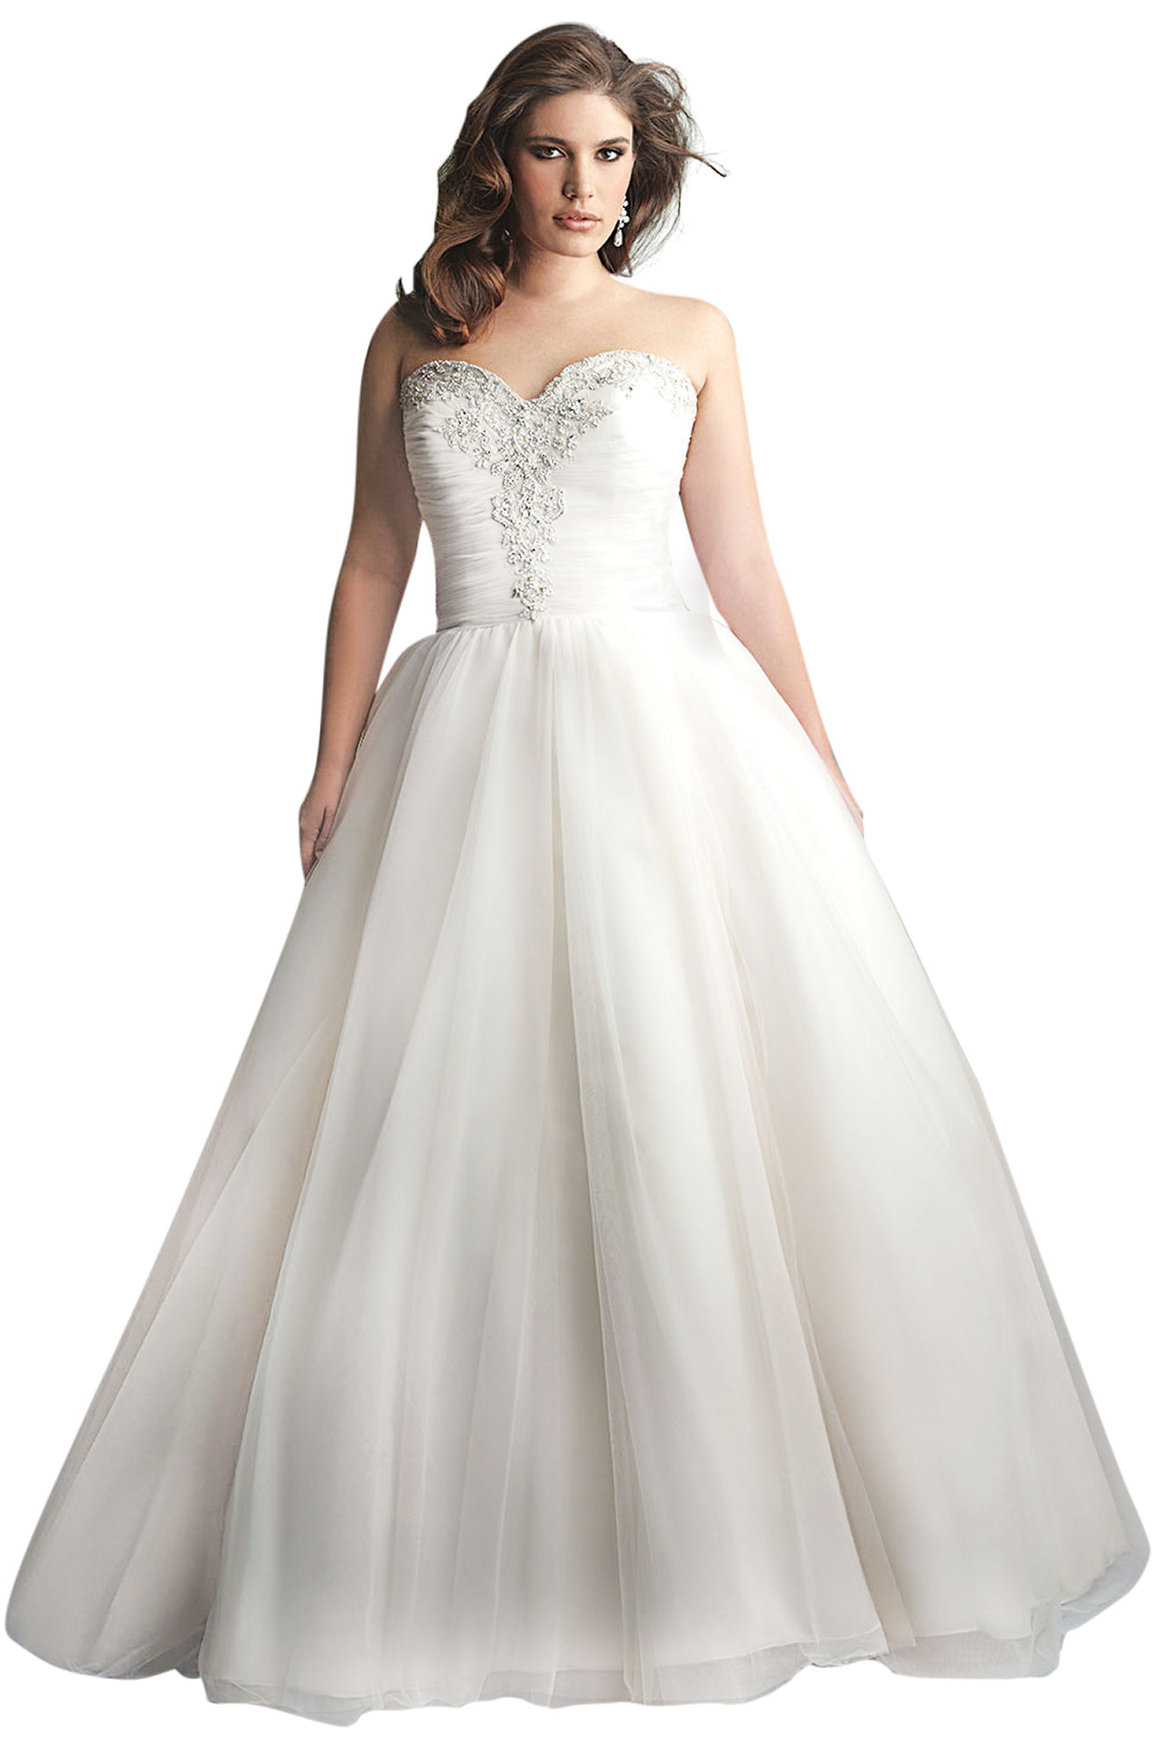 Best Wedding Dress Body Type Quiz : Best wedding gown styles for your body type long hairstyles